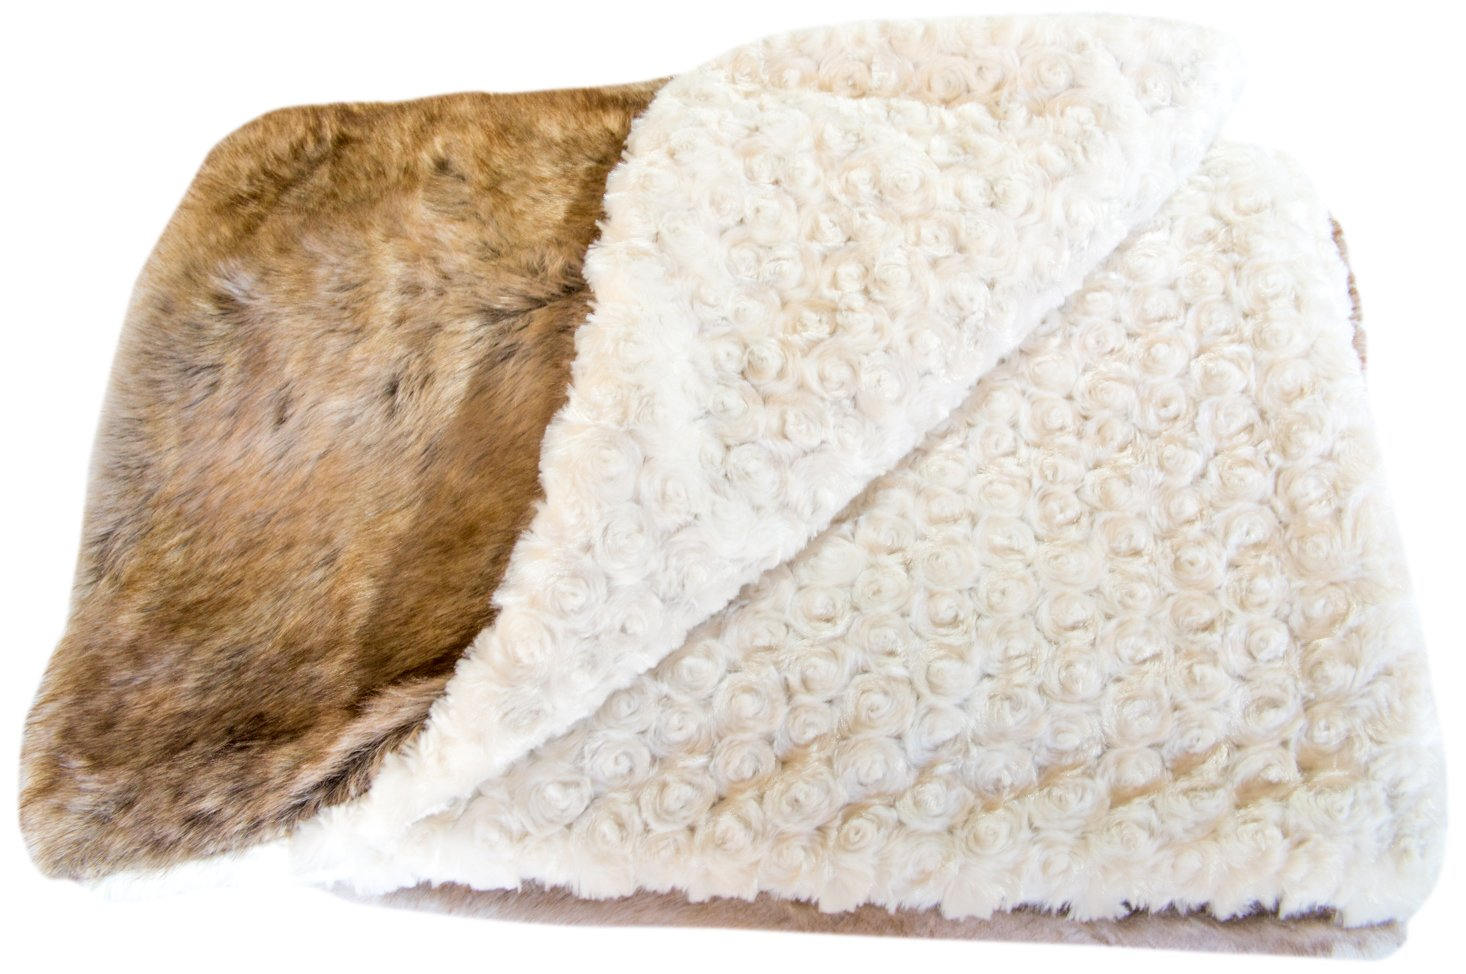 GoodDogBeds Faux Fur Square Dog Blanket, 36 by 36-Inch, Brown Shell